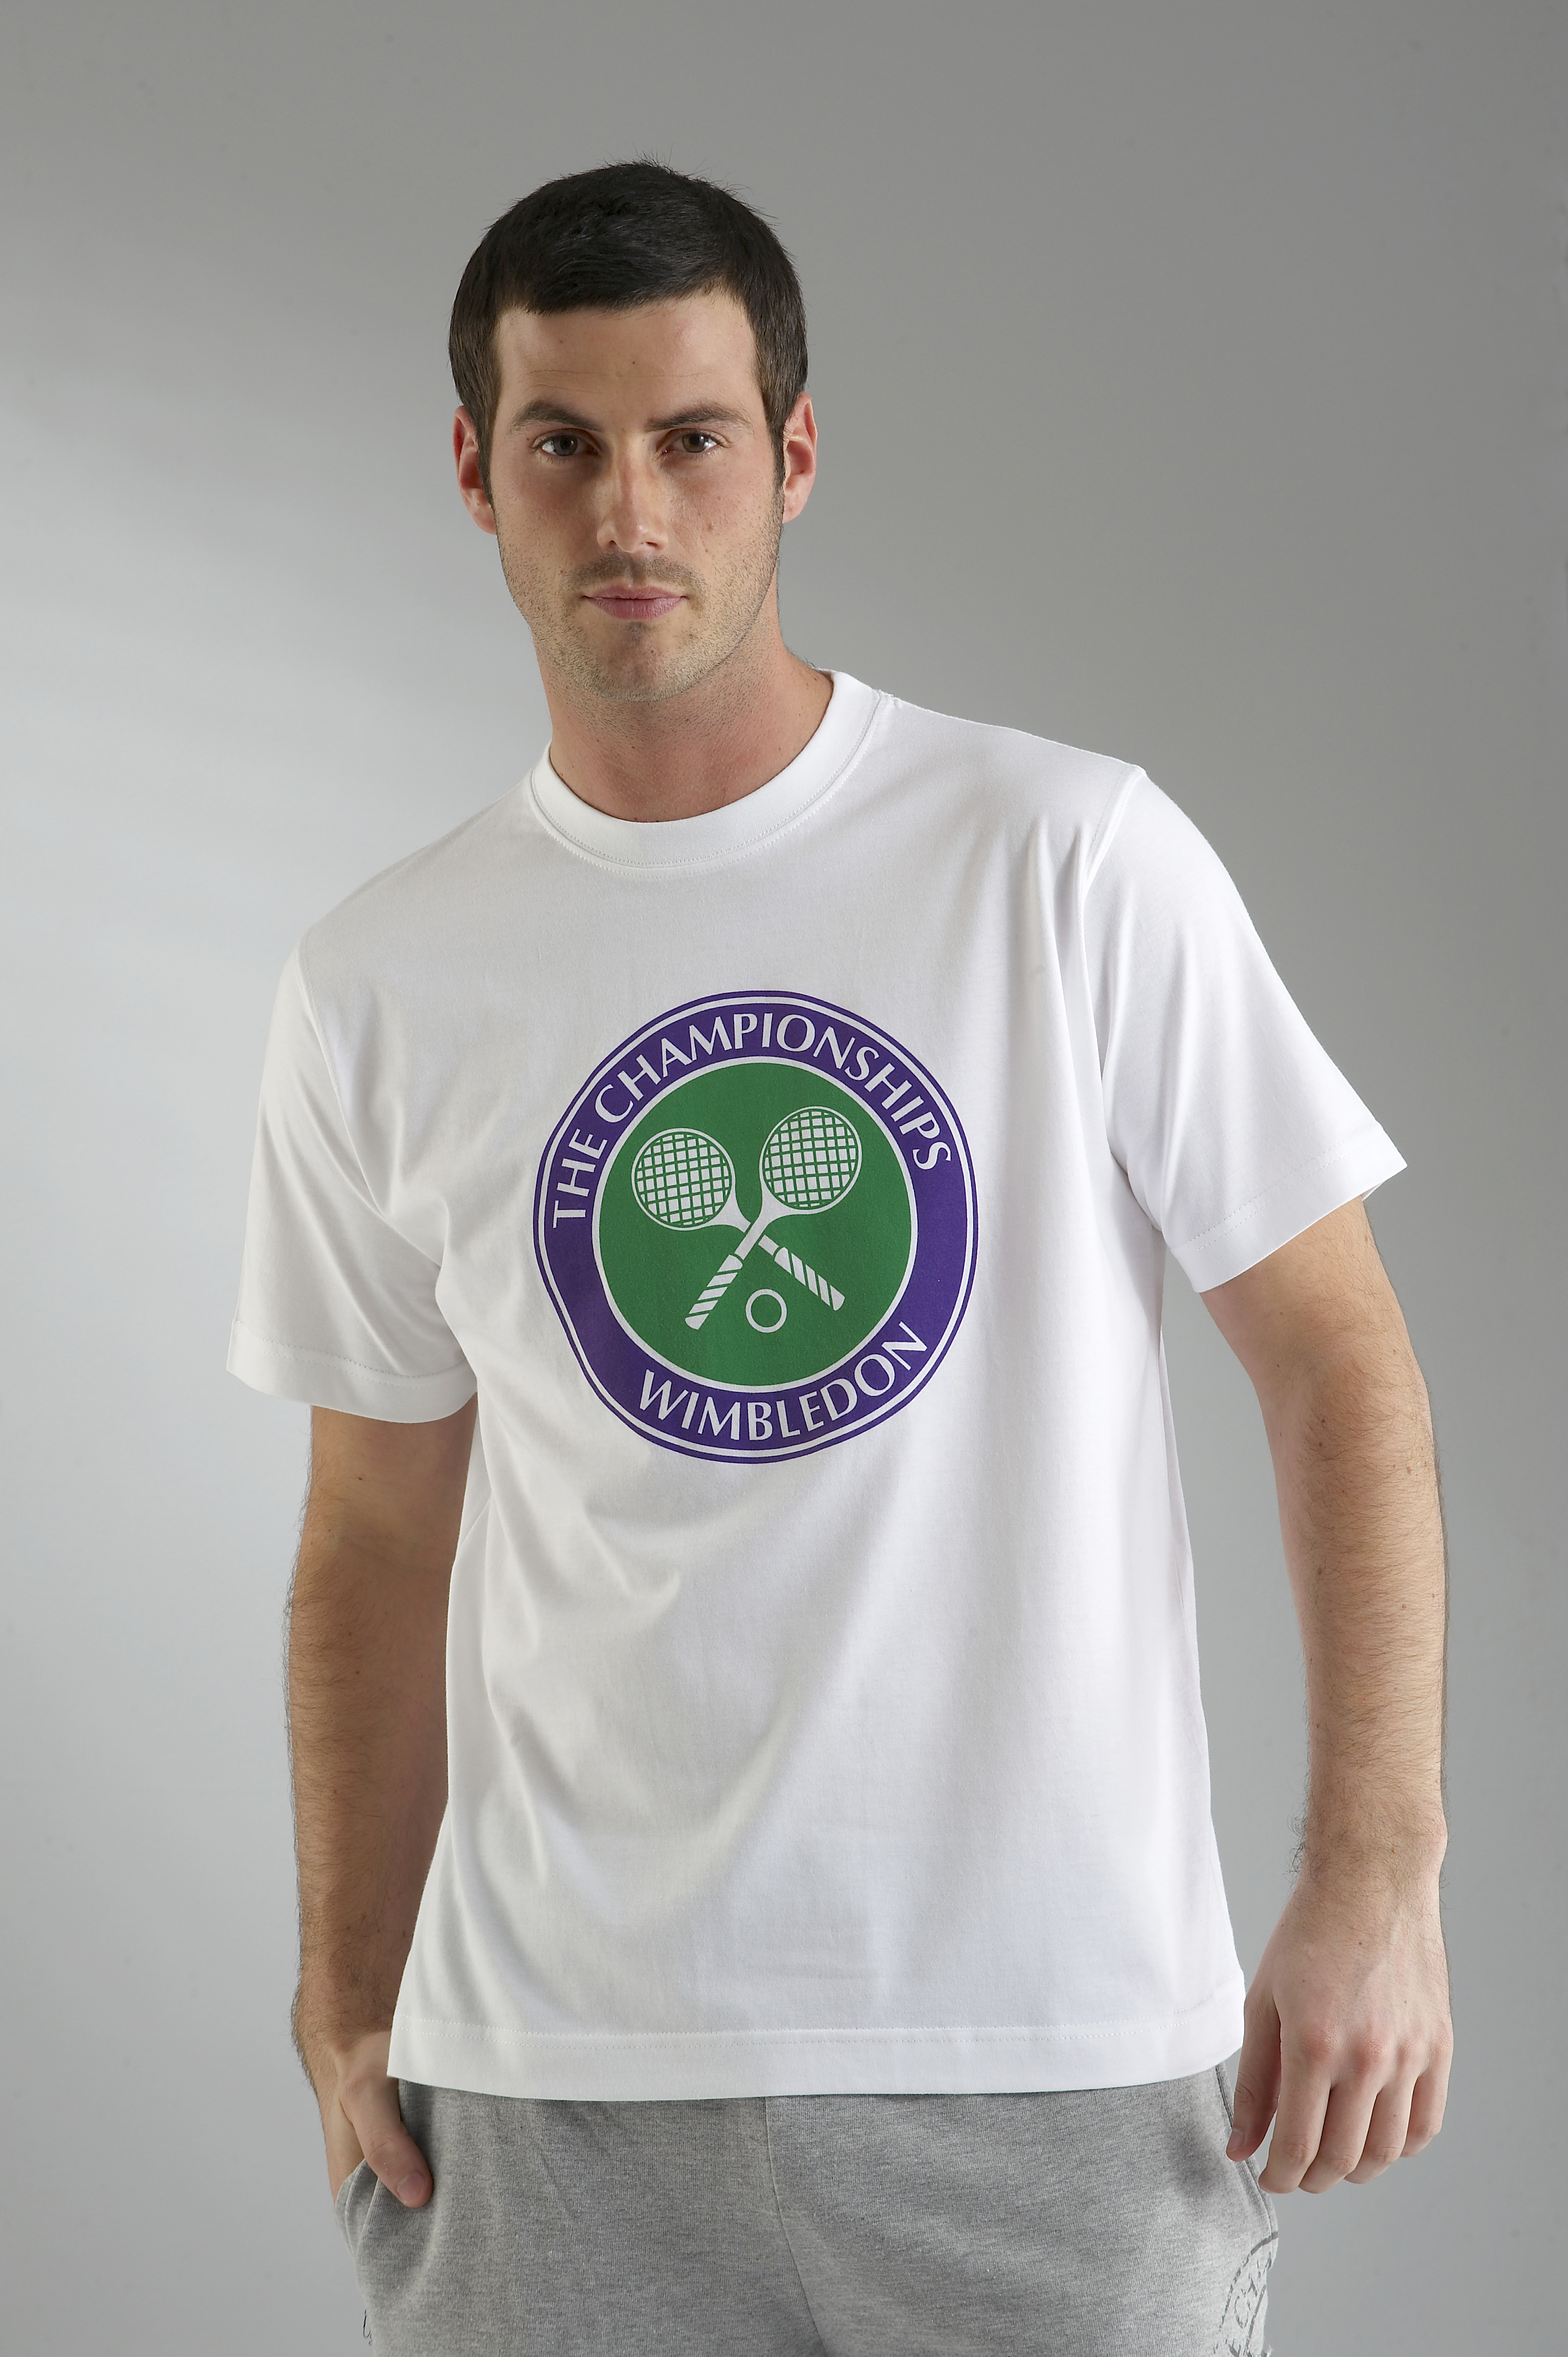 Wimbledon Crossed Rackets Print T-Shirt - White